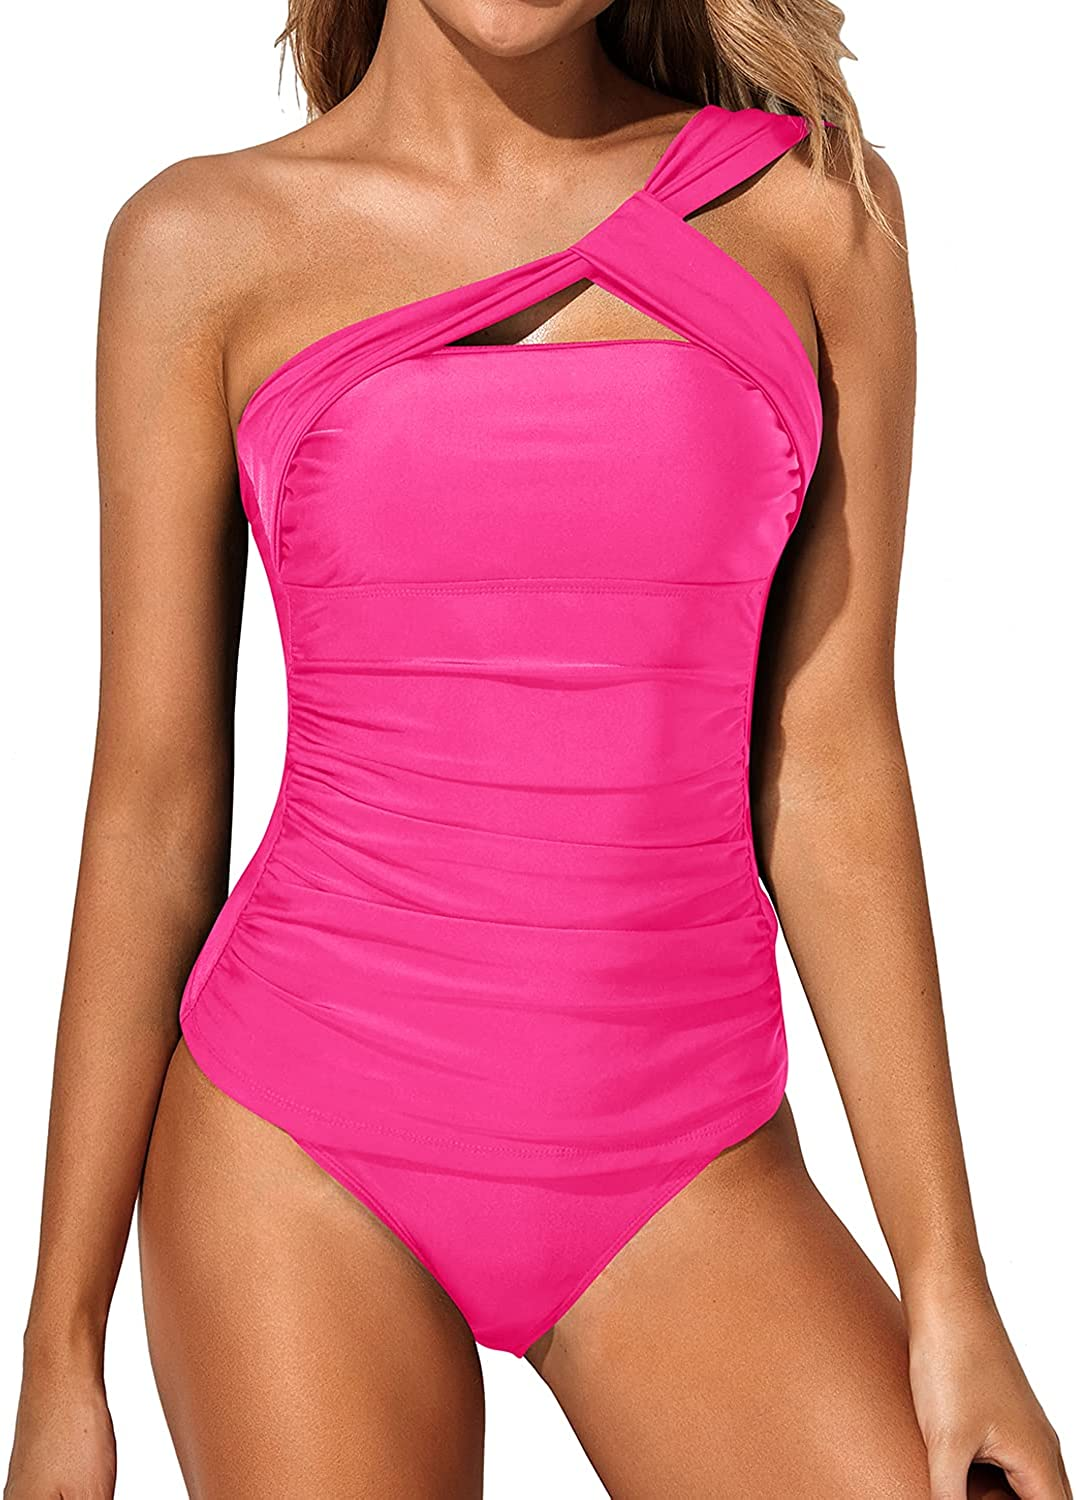 Tempt Me Tankini Bathing Suits for Women Ruched One Shoulder Tankini Top Two Piece Swimsuits